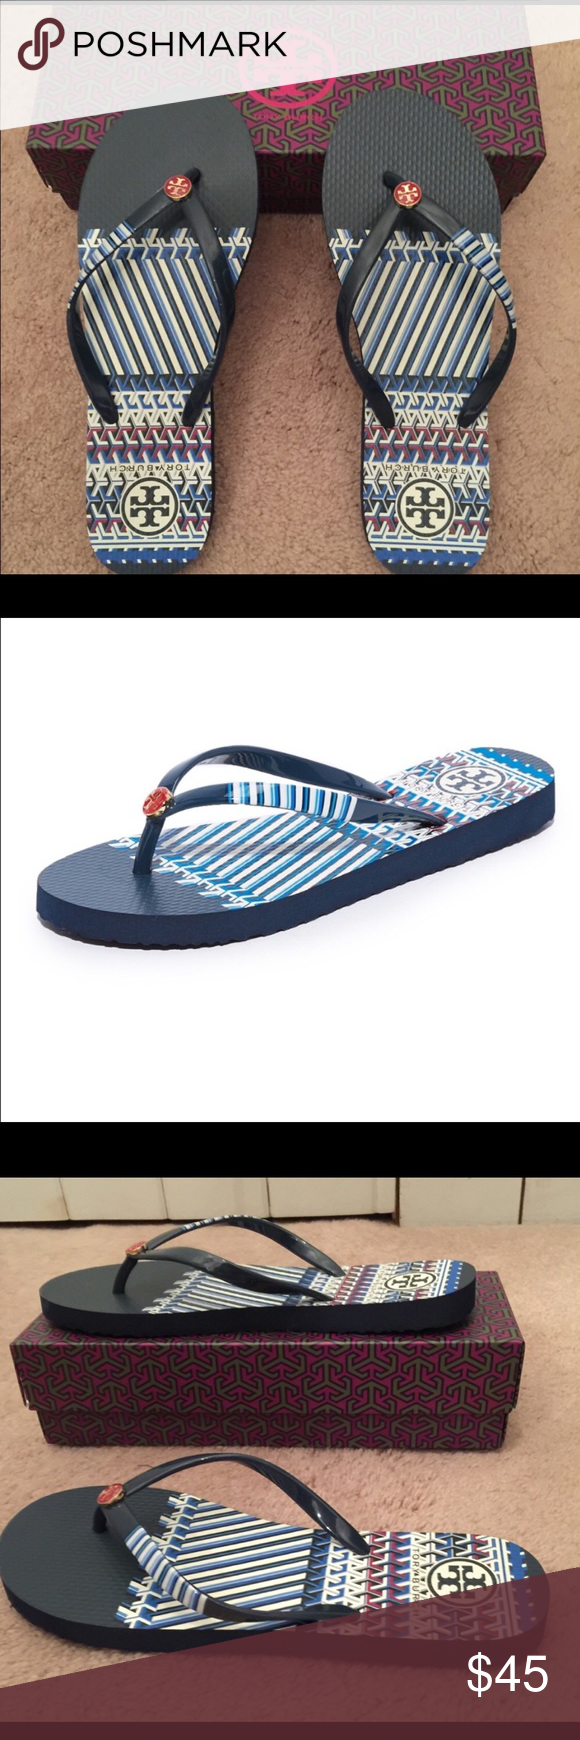 5ee341ad807a Tory Burch Darby Border Thin Flip Flop 💯% authentic Tory Burch Darby  Border Thin Flip Flop NIB iconic stacked T red   gold medallion on a blue    white ...